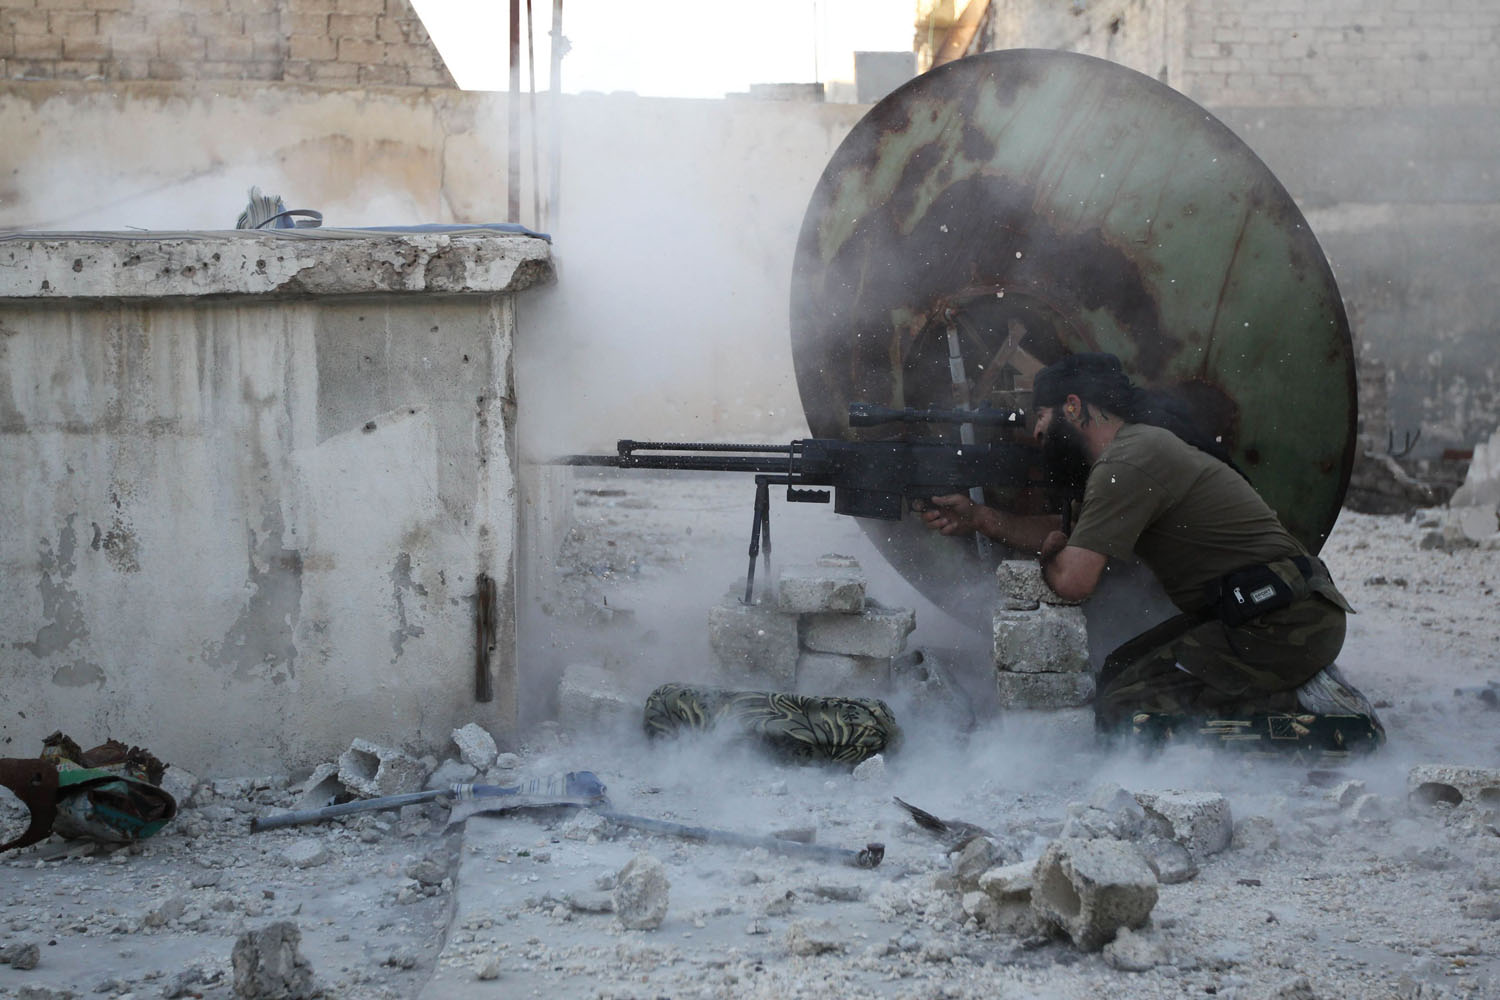 June 3, 2013. A member of the Free Syrian Army shoots back at a sniper during what activists said were clashes with pro-government forces in Aleppo's Karm al-Jabal district.